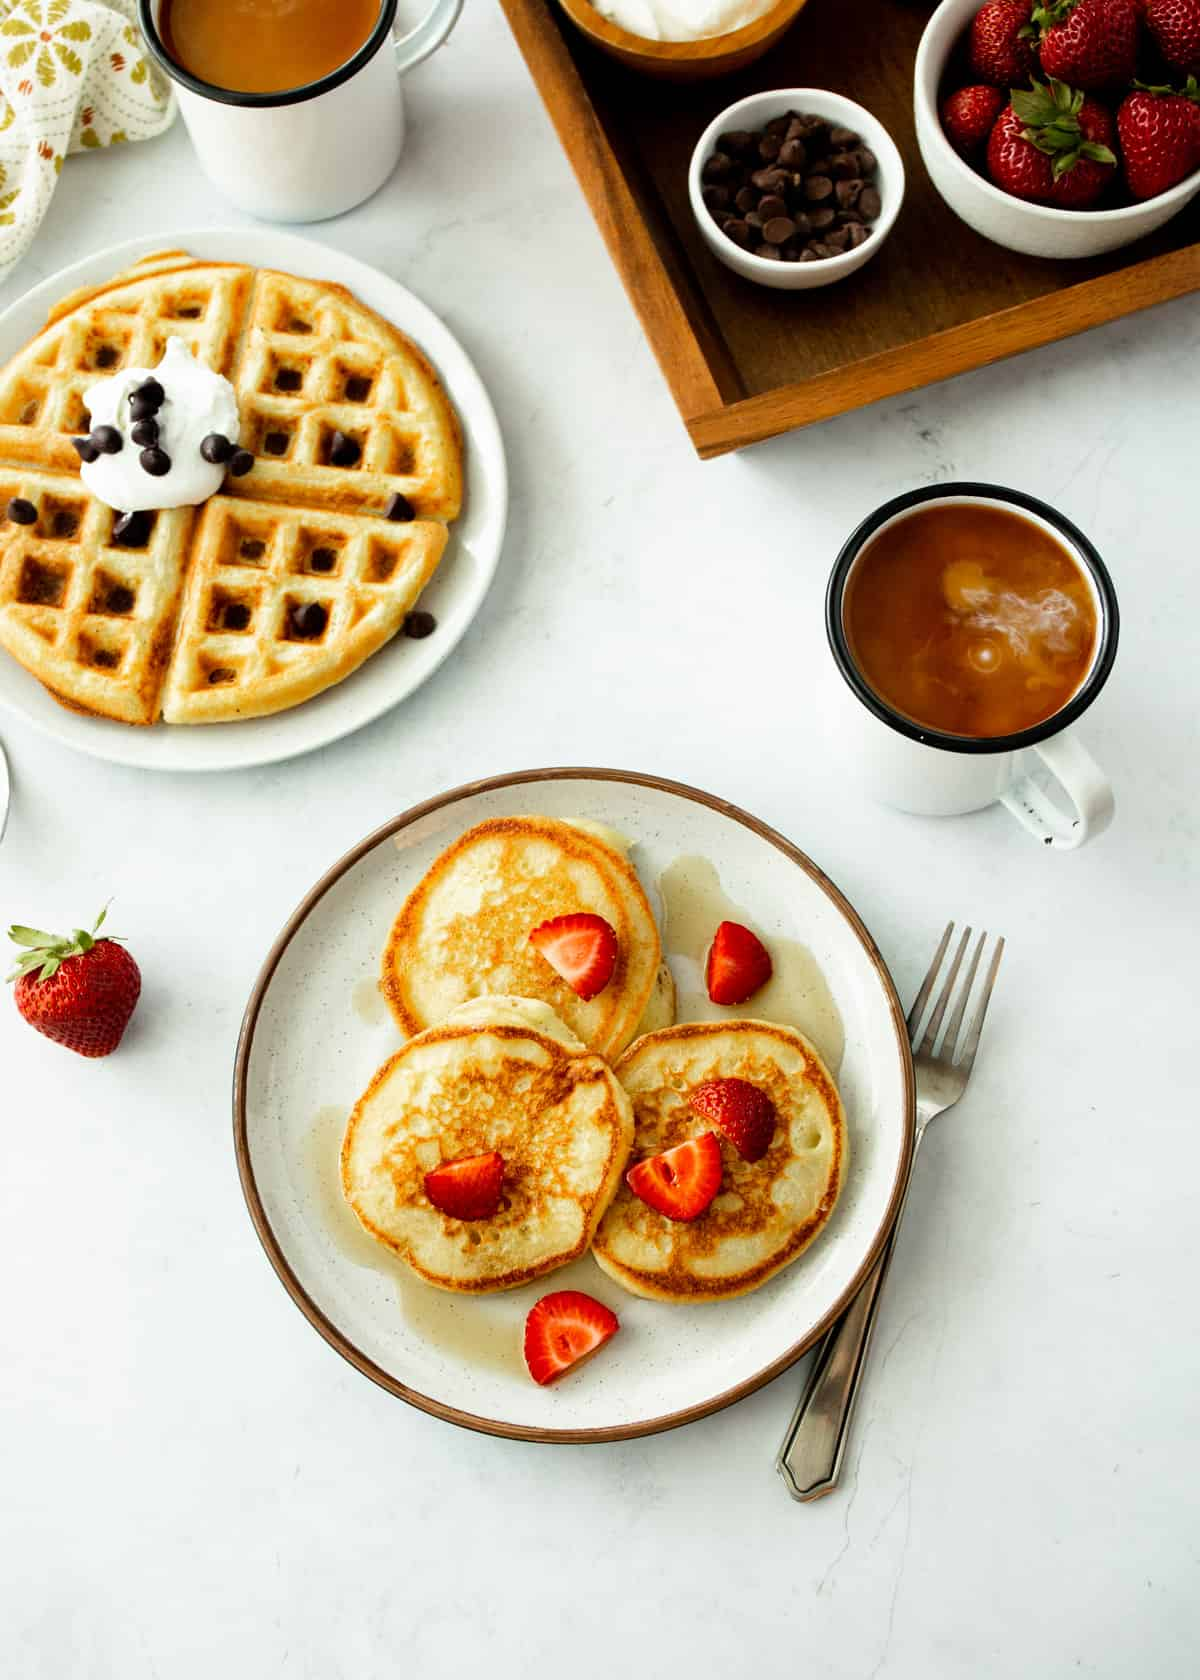 pancakes and waffles on white plates